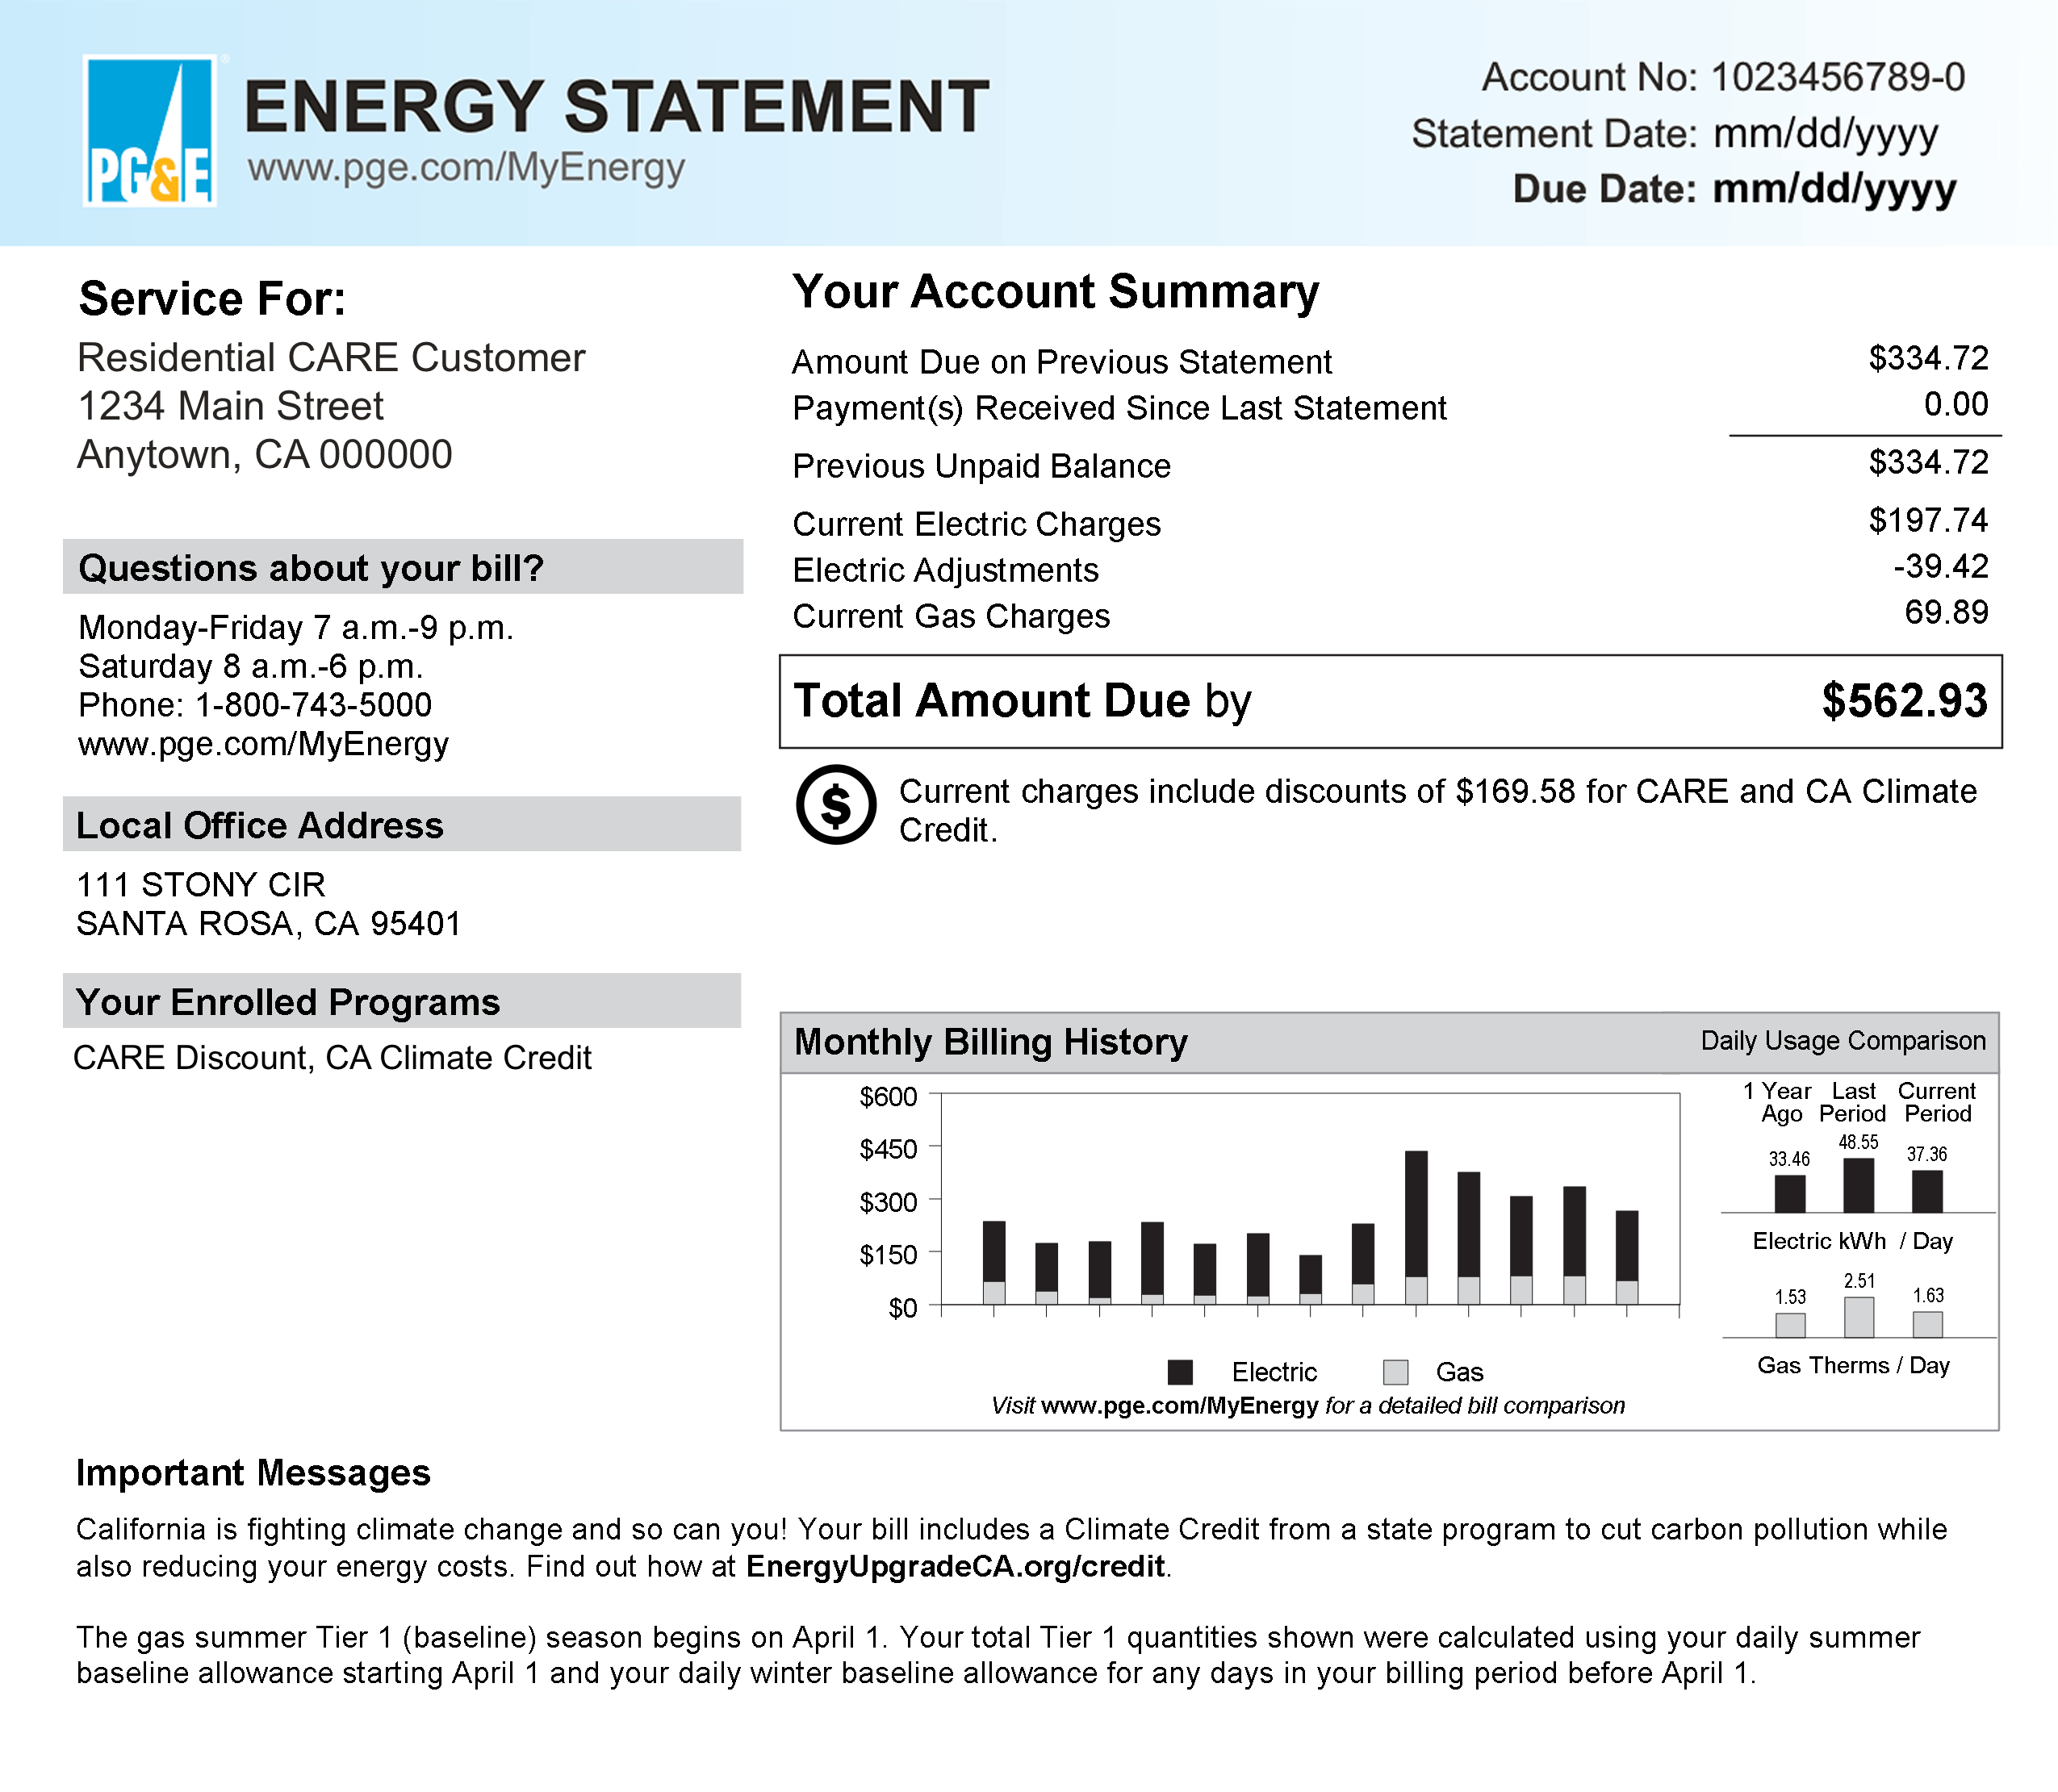 energy statement sample bill with account number, final bill and daily usage chart